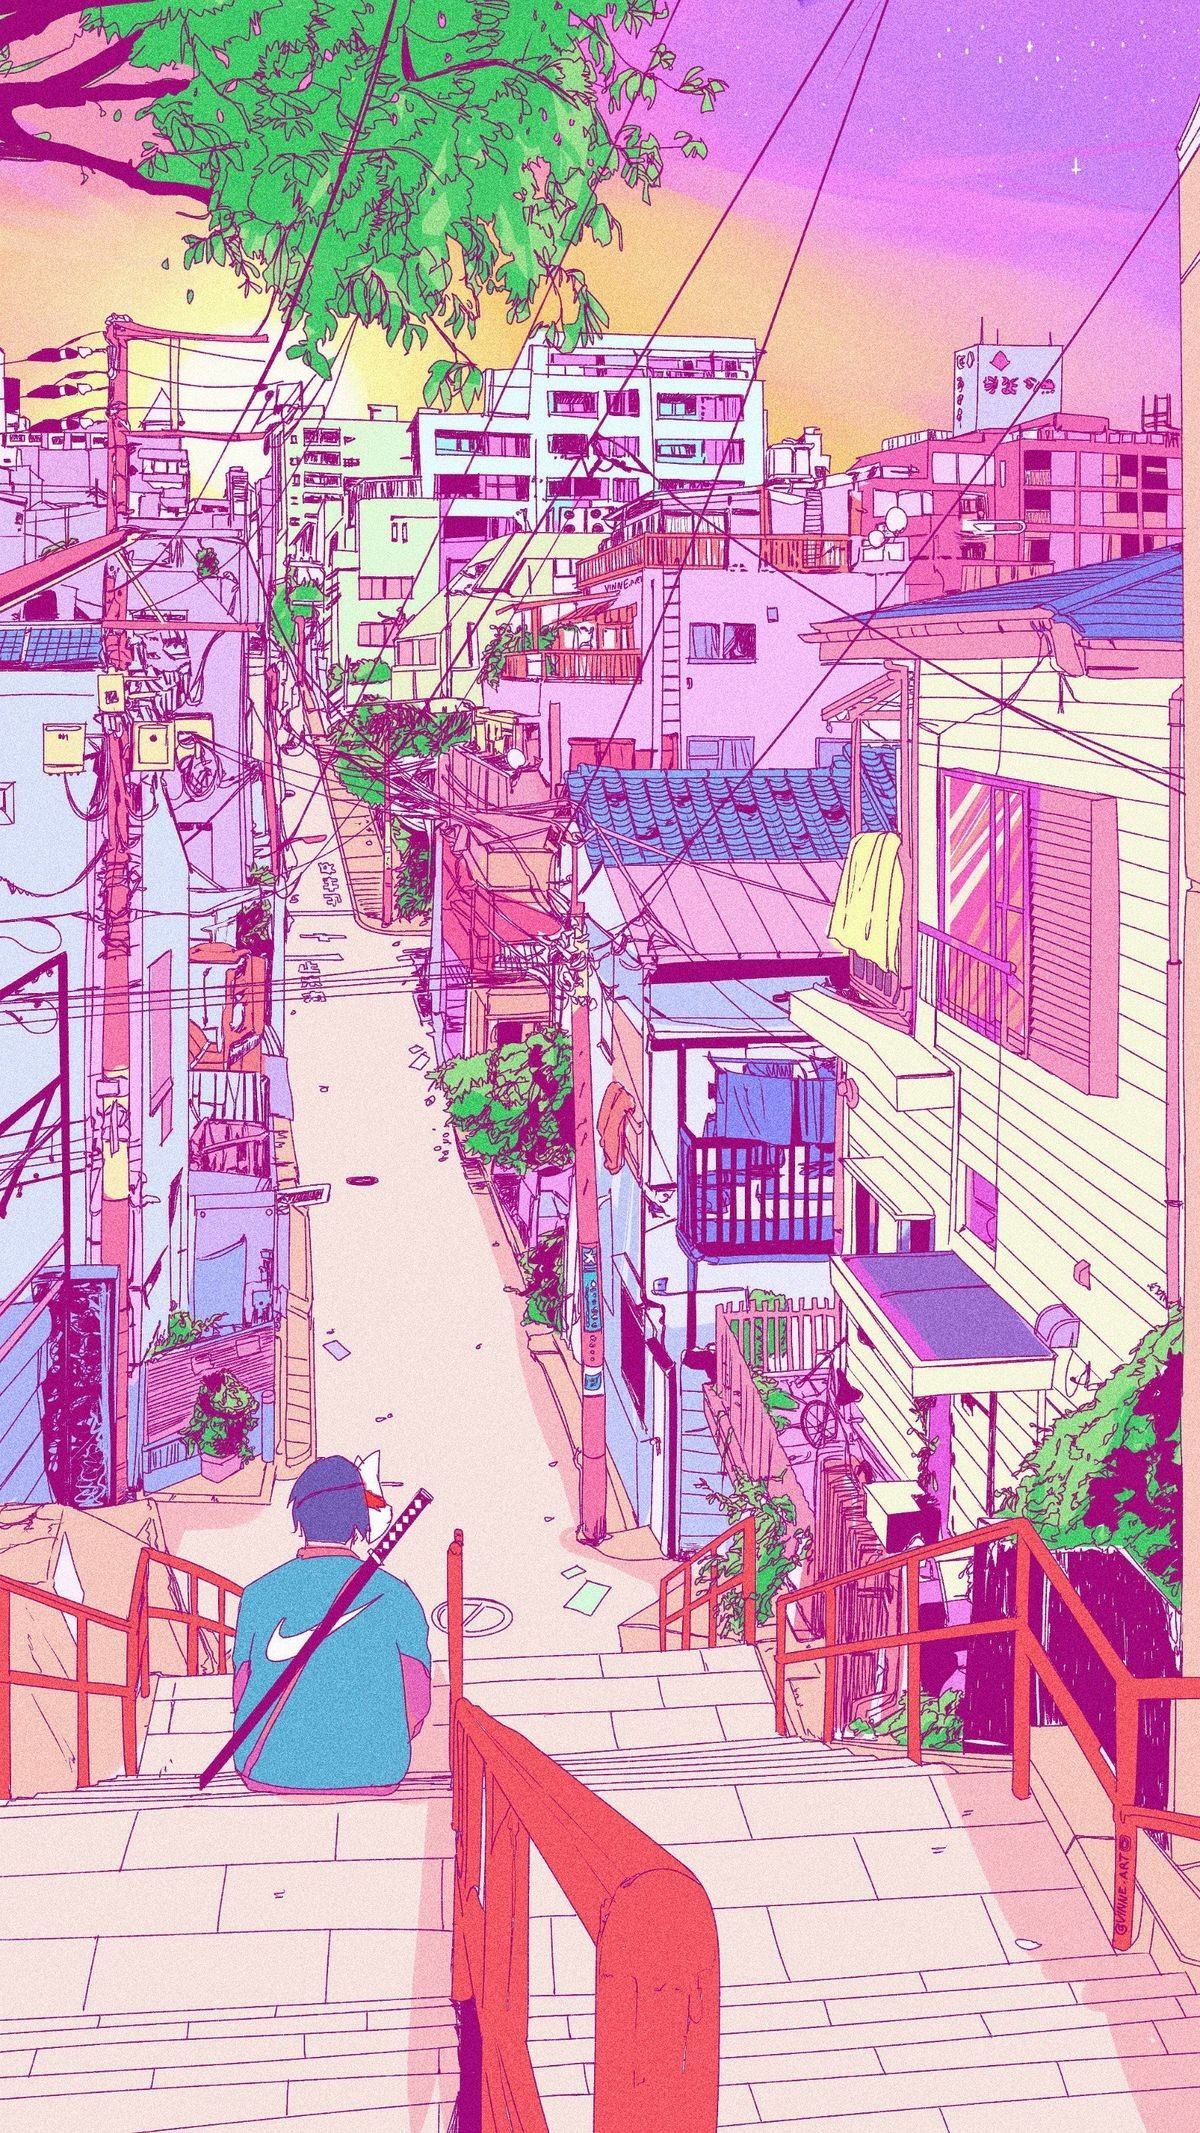 Pin By Danielle Lo On Illus Anime Scenery Wallpaper Scenery Wallpaper Aesthetic Wallpapers